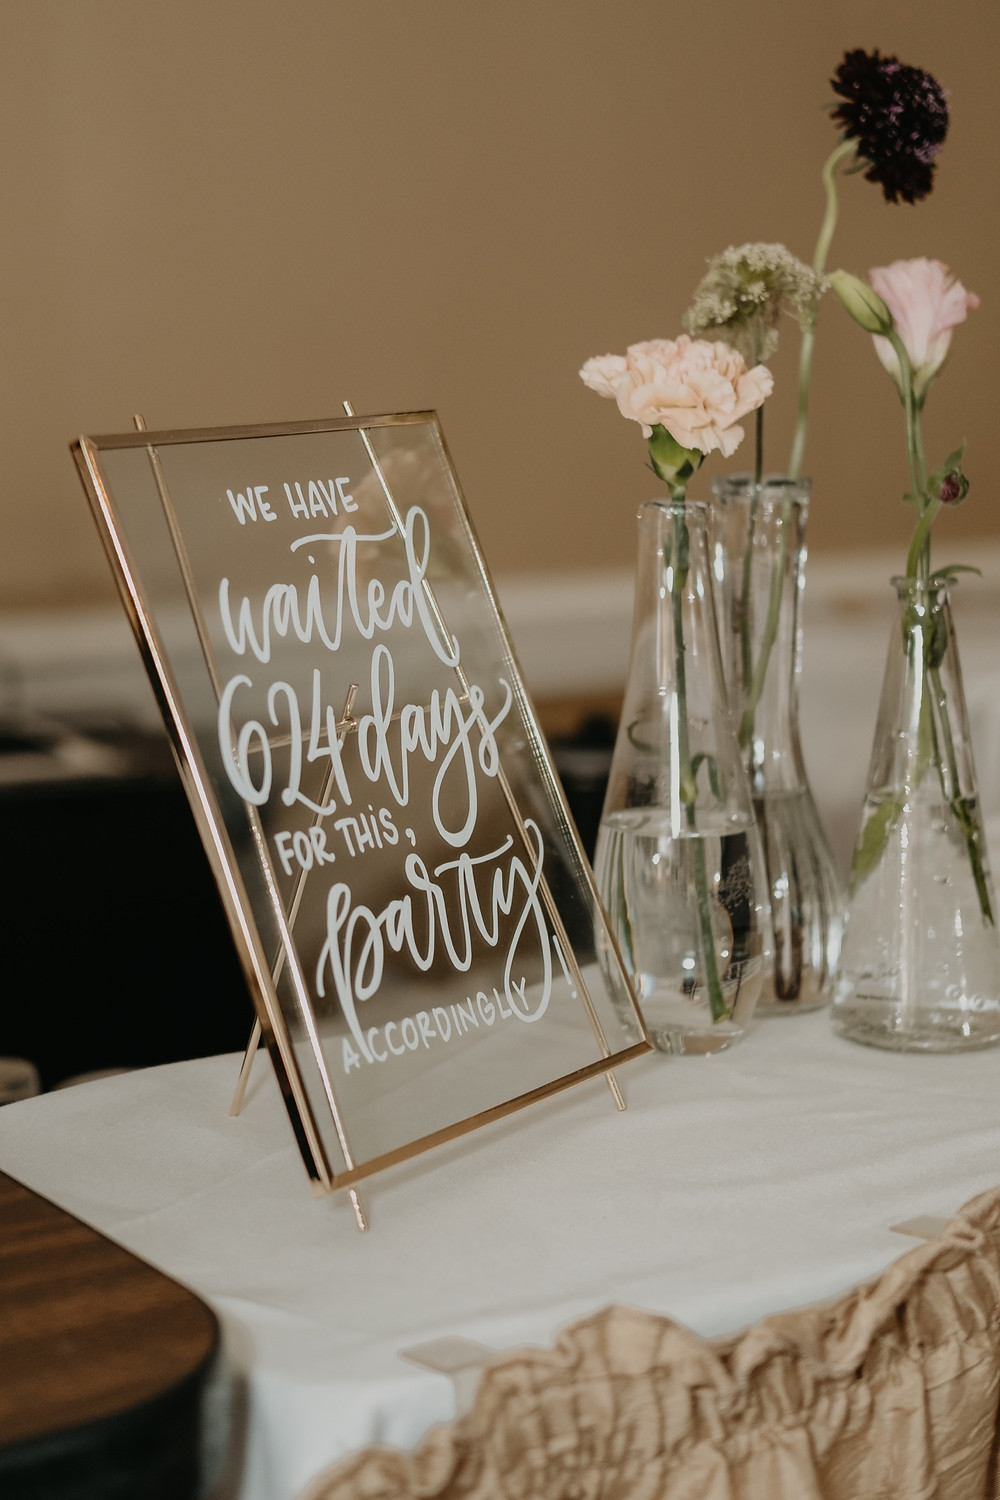 Pandemic wedding day details. Photographed by Nicole Leanne Photography.